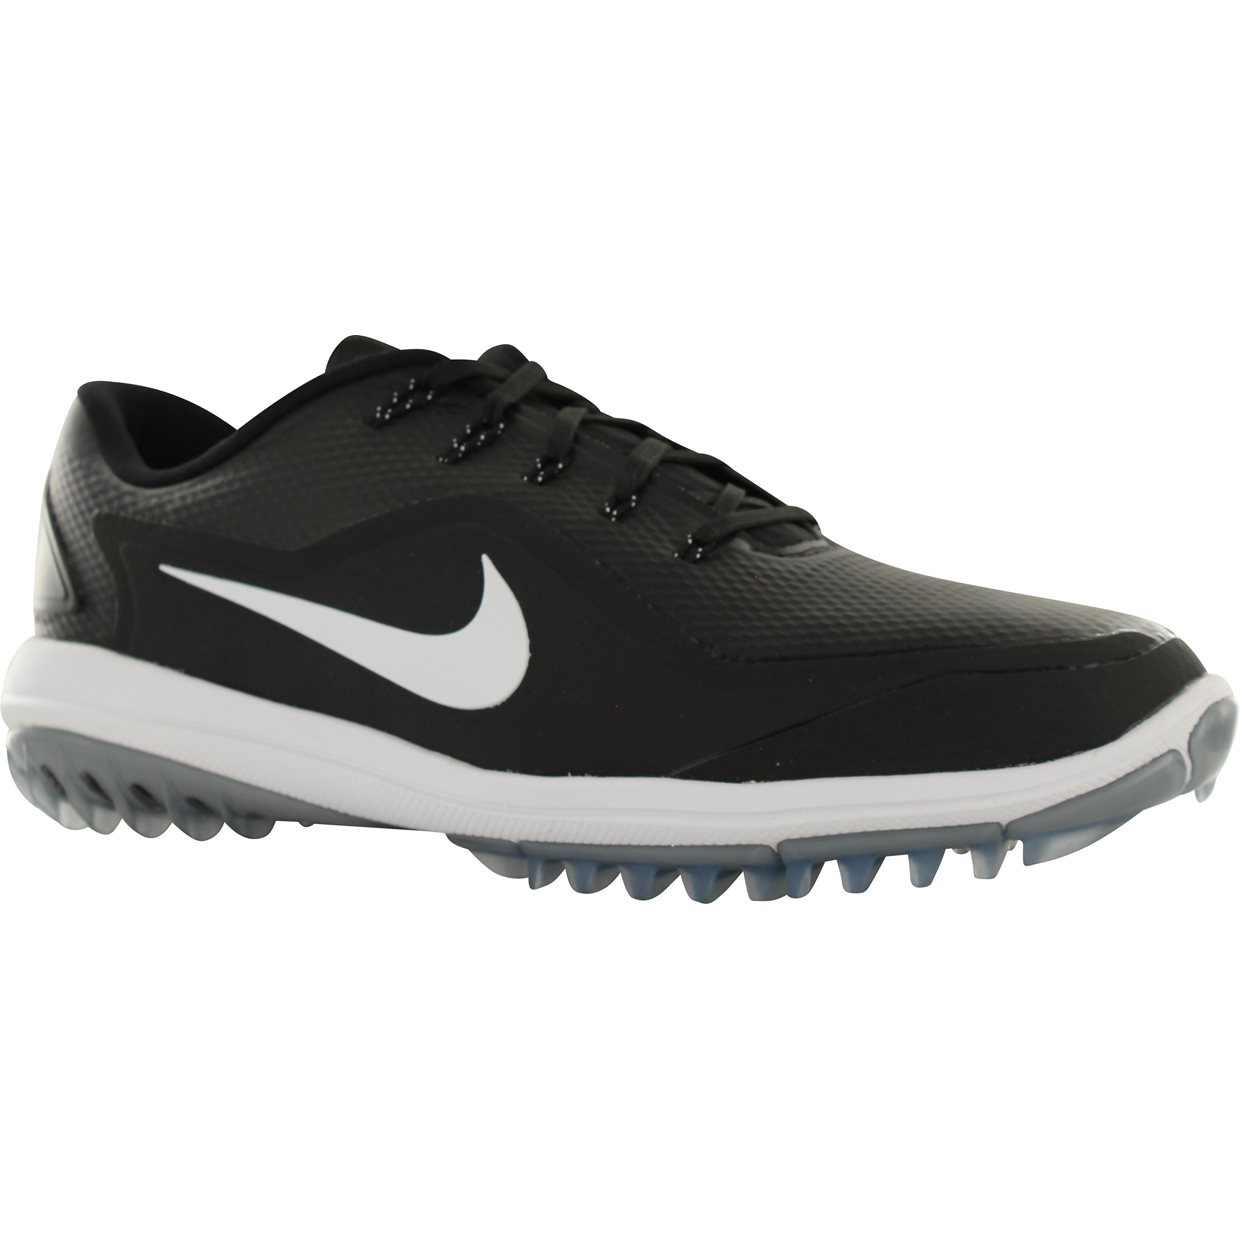 low priced b42e7 9d4a4 Nike Lunar Control Vapor 2 Spikeless Shoes. Drag 360 Left or Right to View.  Alternate Product Image View 1 ...